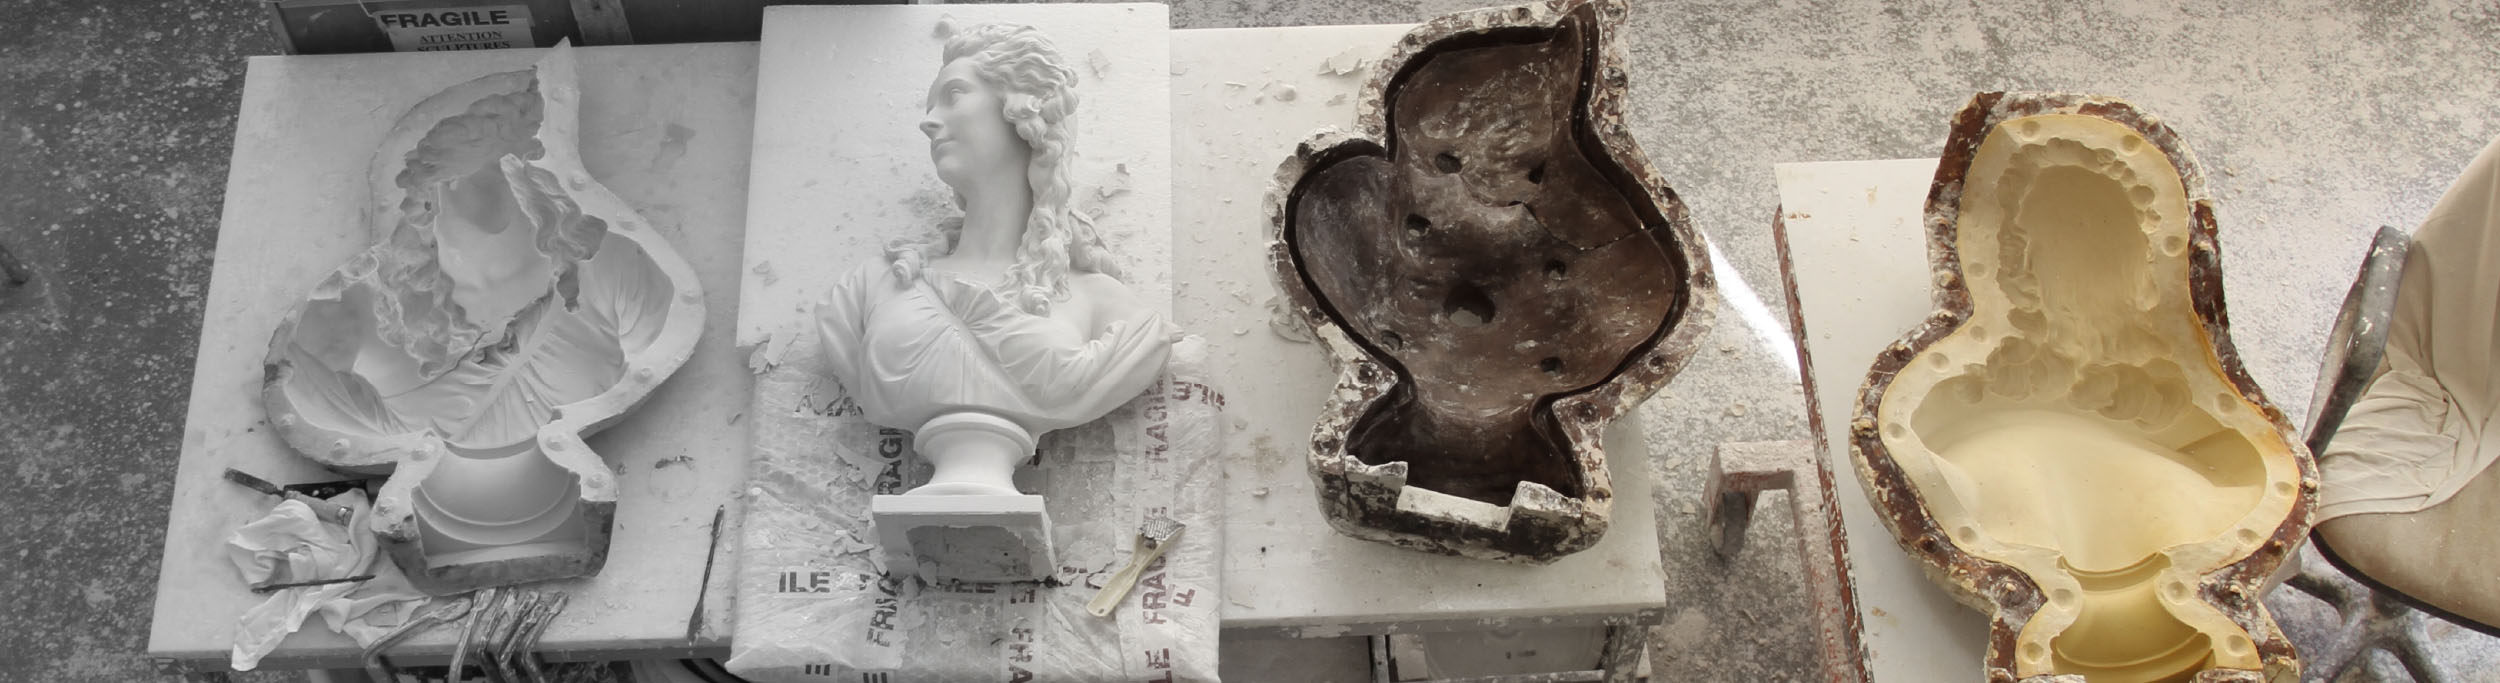 From producing a silicone mold to casting in resin, plaster or bronze, the cast workshop techniques - Atelier de moulages du Louvre